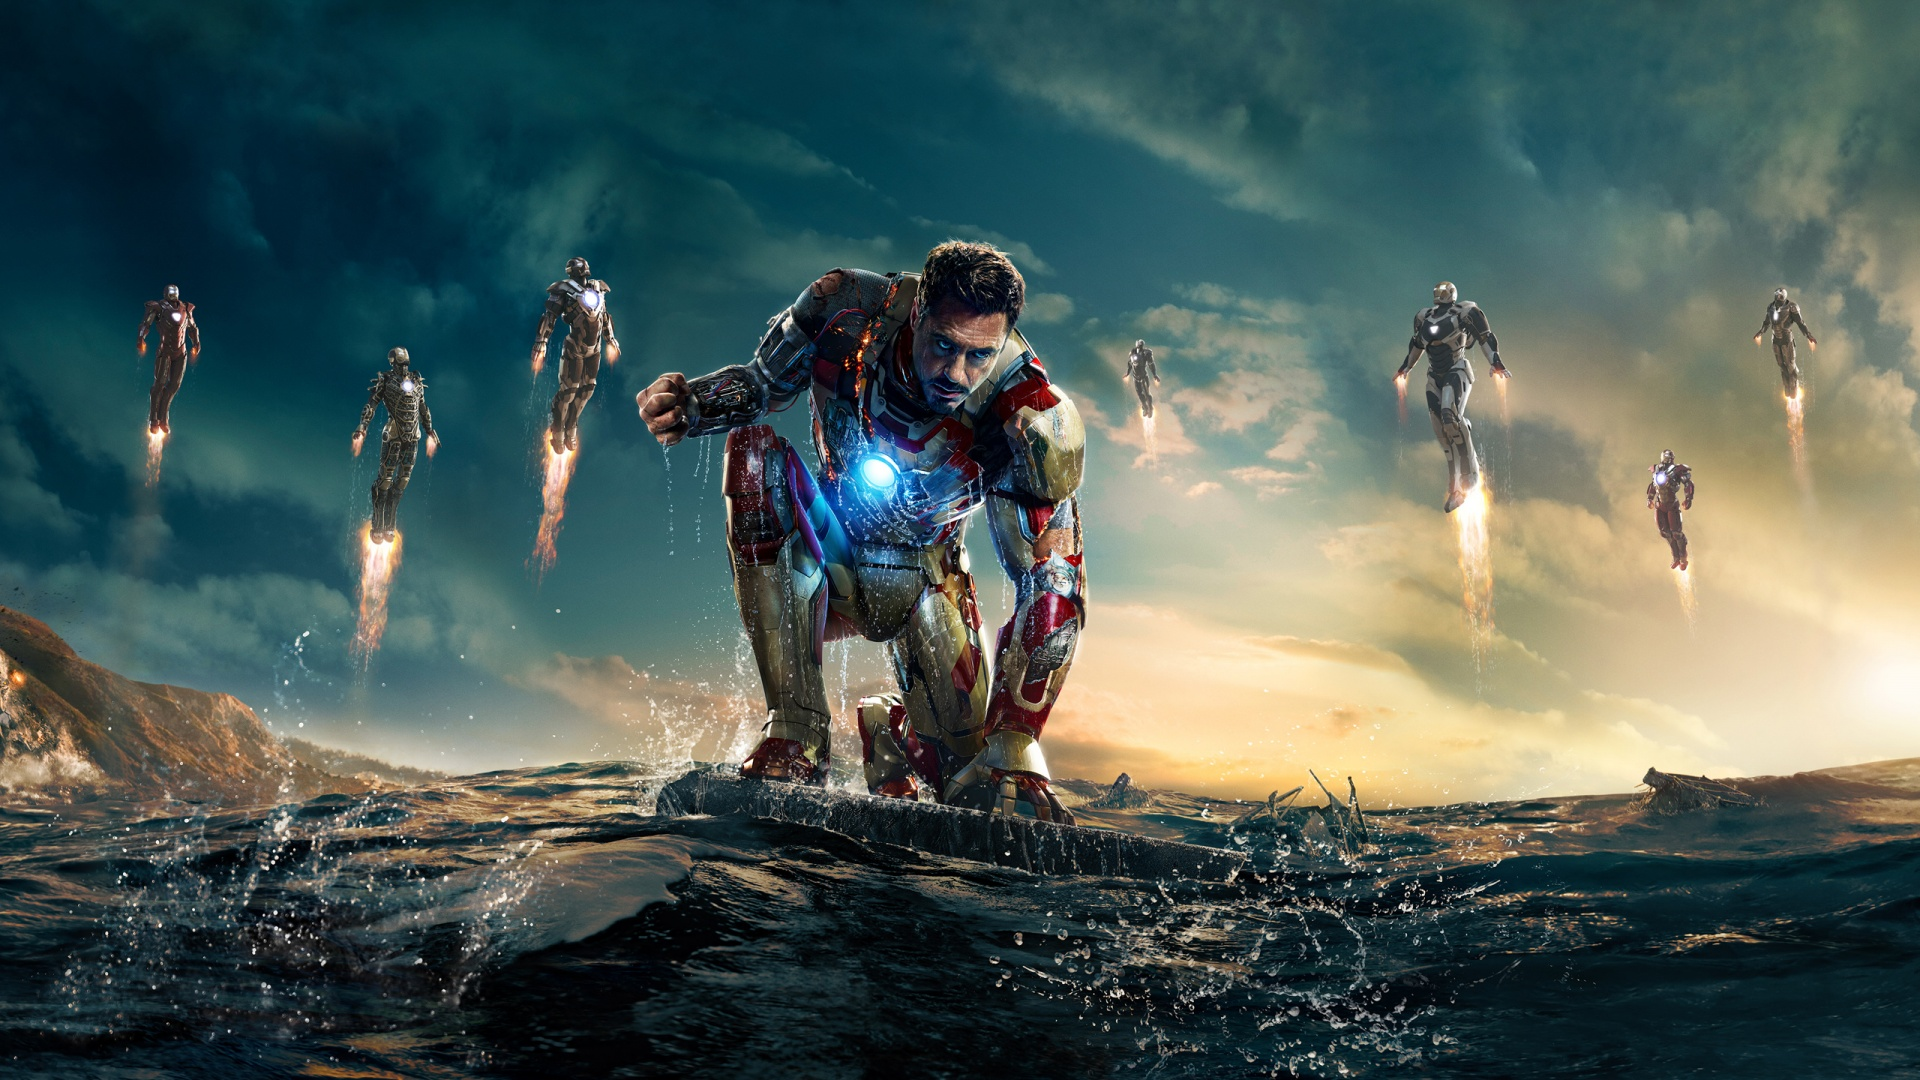 Hd wallpaper 1080p - Iron Man 3 New Wallpapers Hd Wallpapers